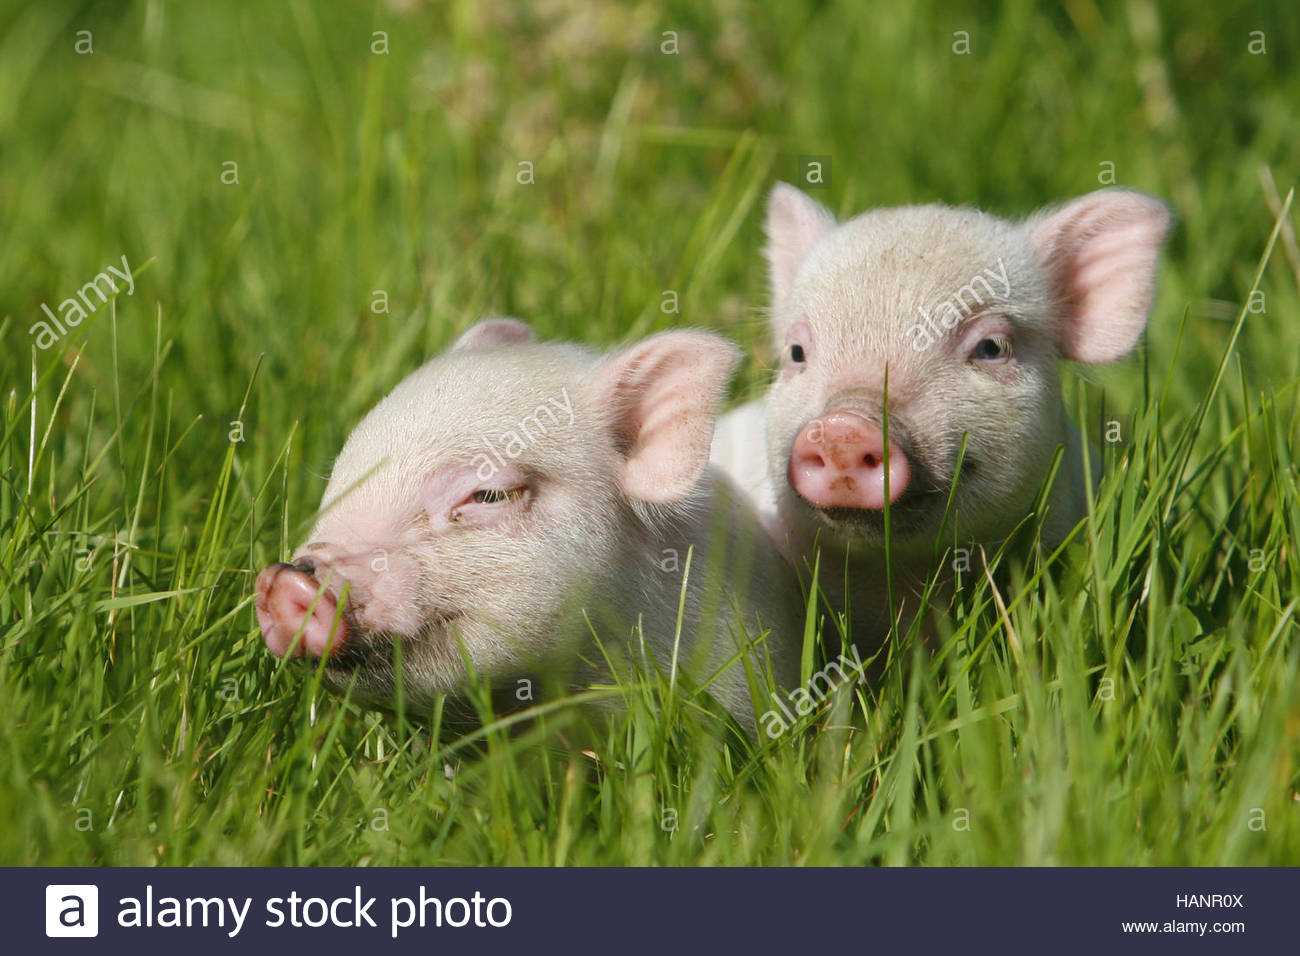 minischweine zwergschweine ferkel piglets stock photo royalty free image 127098186 alamy. Black Bedroom Furniture Sets. Home Design Ideas